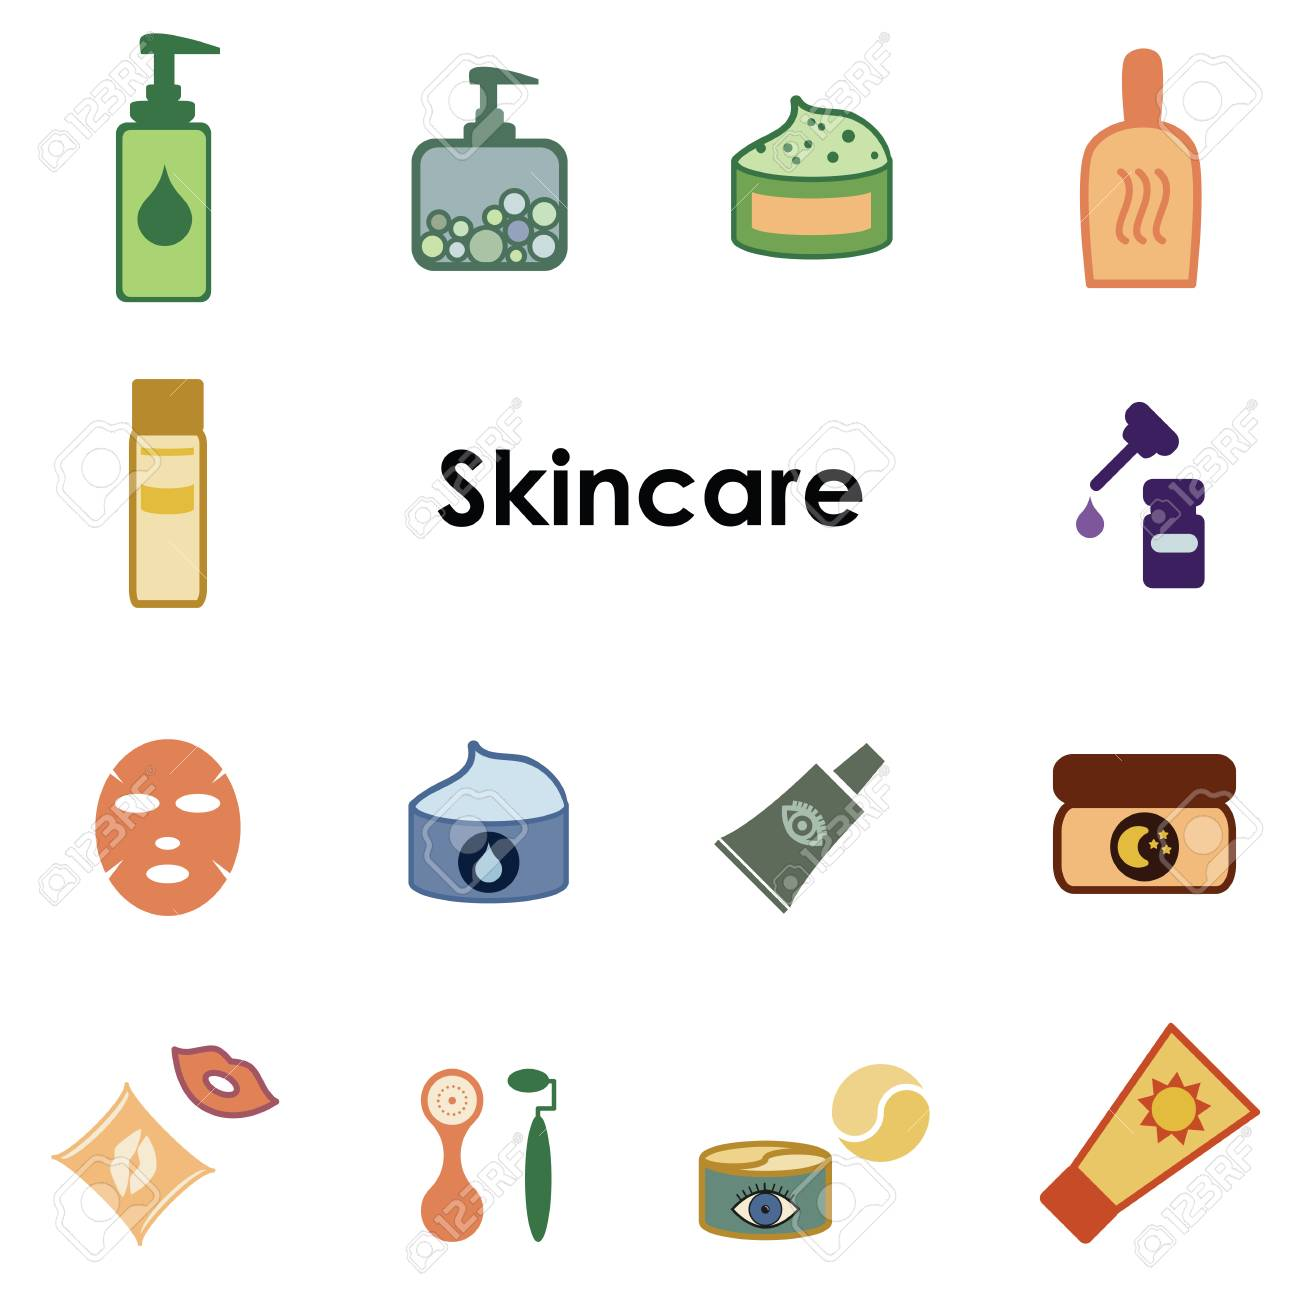 Skin Care for Seniors Market 2020 Technology, Share, Demand, Opportunity, Projection Analysis Forecast Outlook 2026